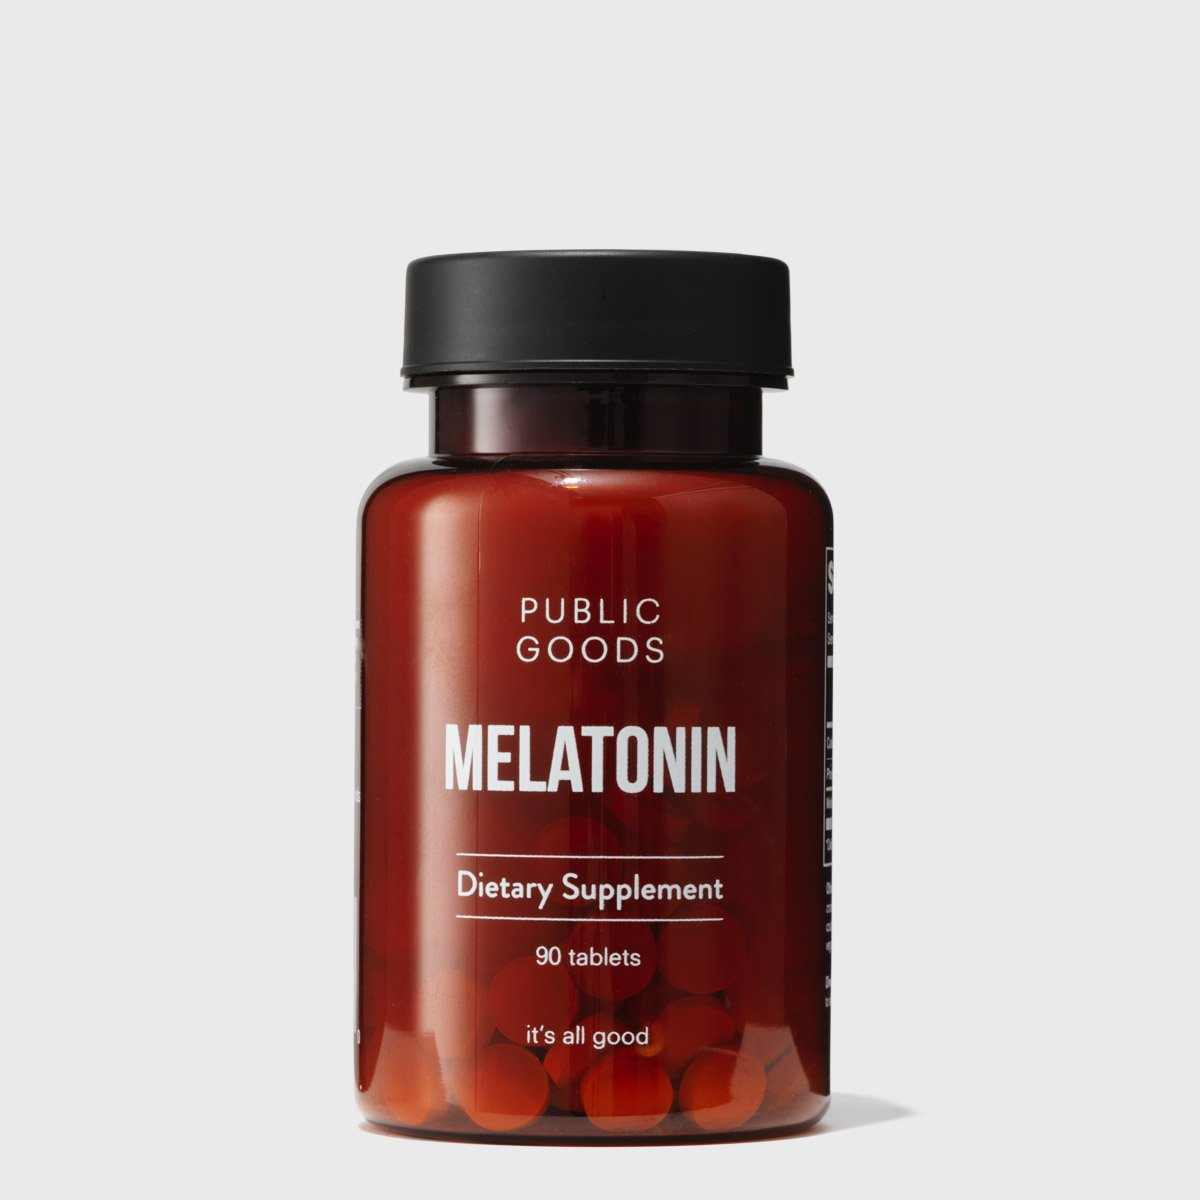 Melatonin 90 ct (Case of 24)